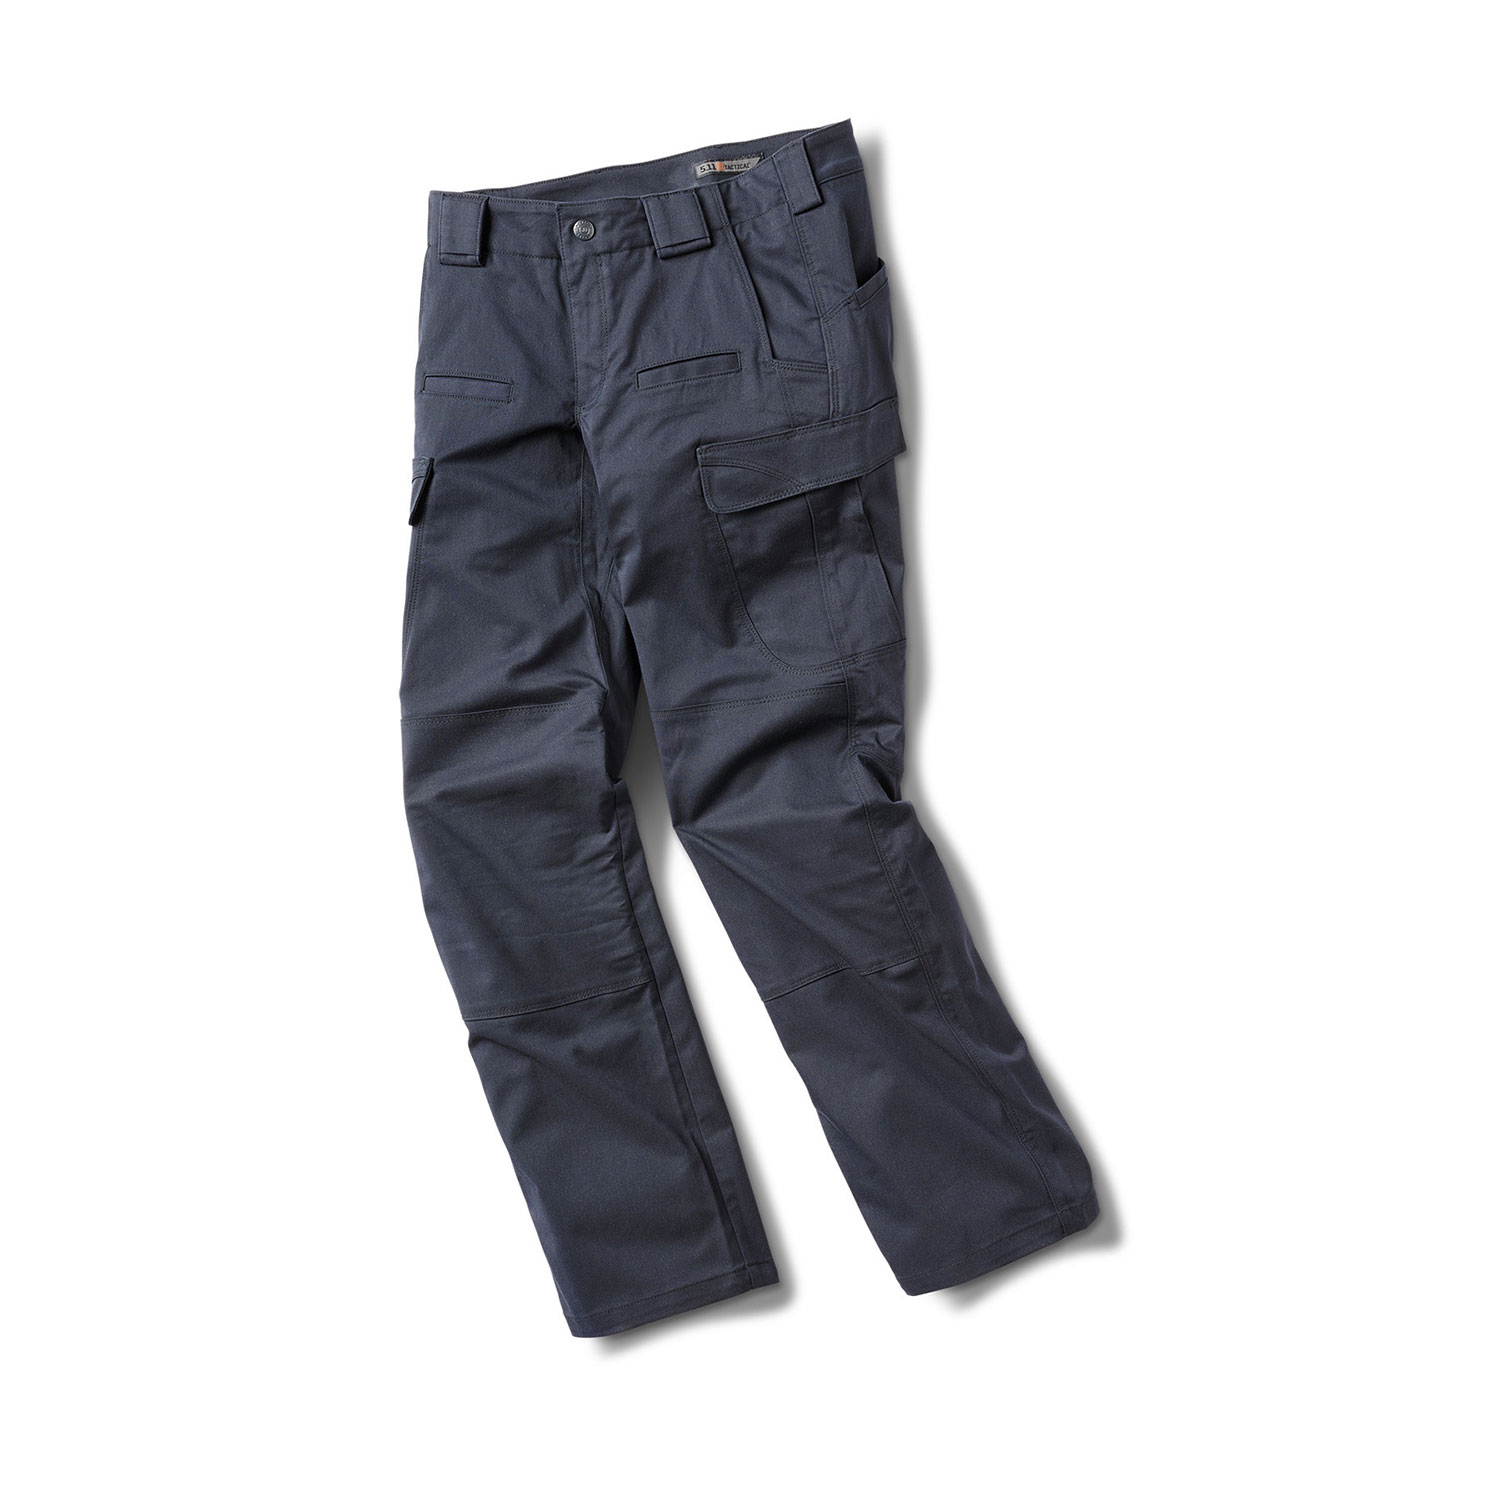 5.11 Tactical Women's NYPD Twill Stryke Pant